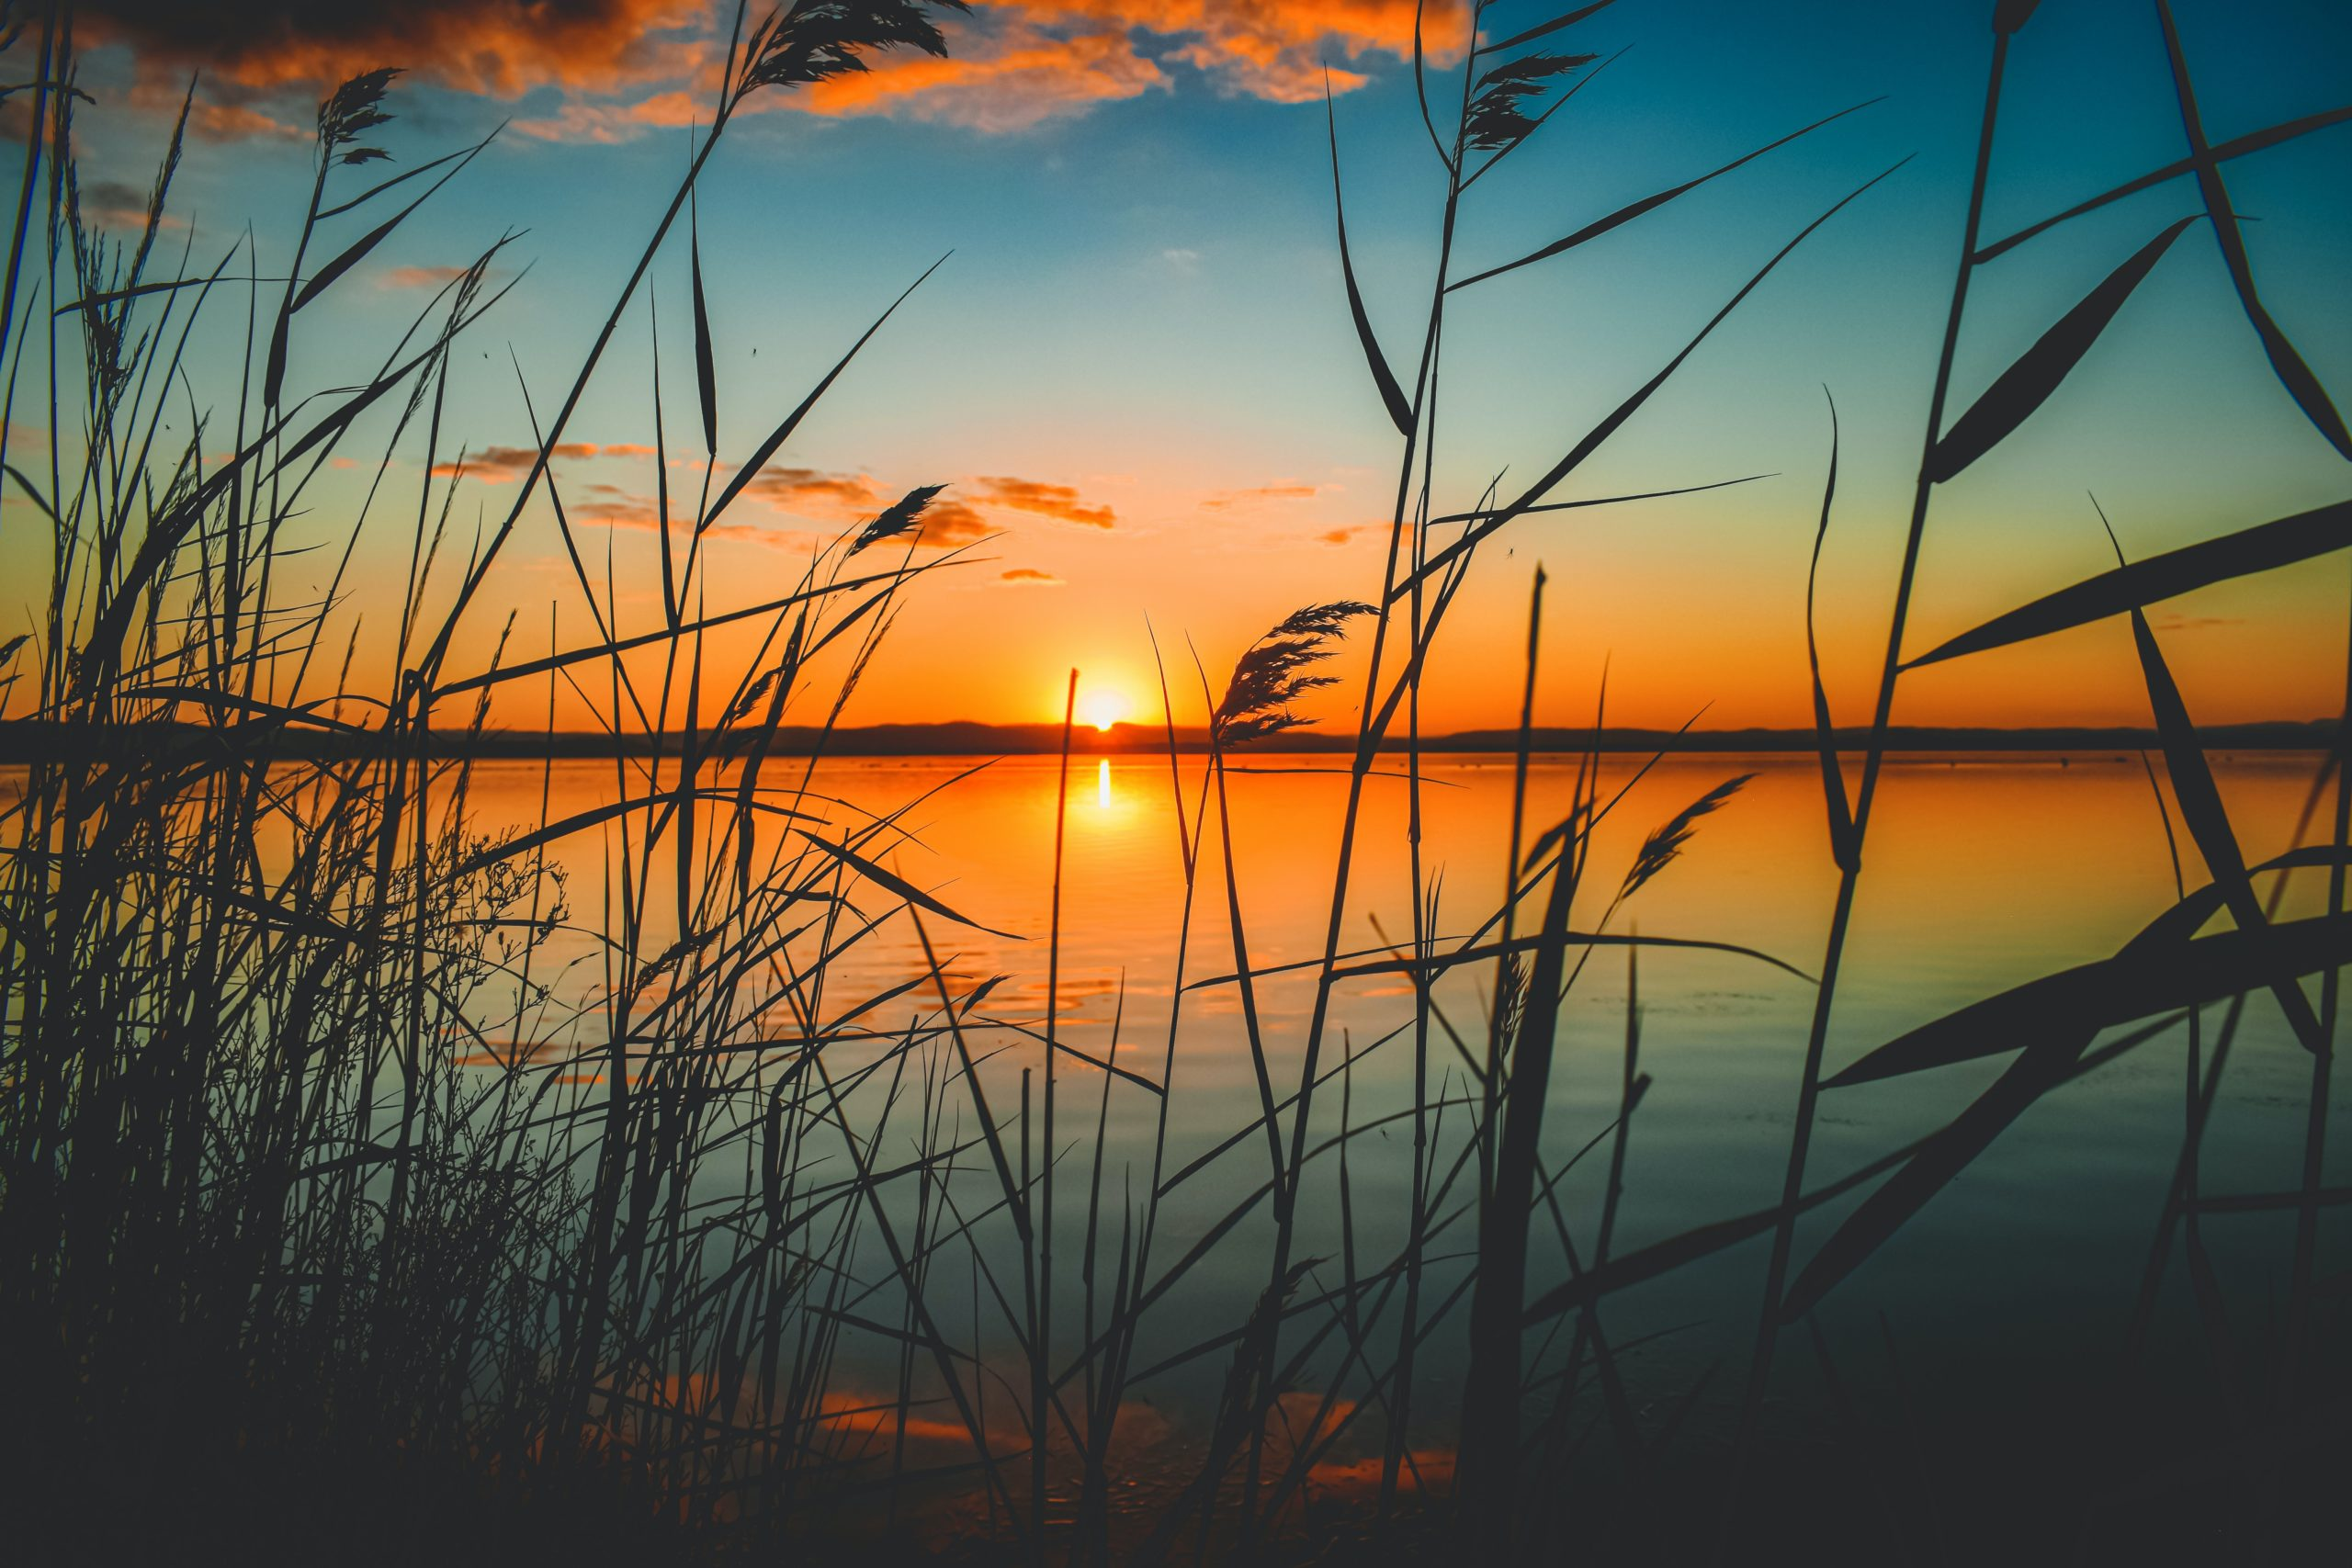 A sunset view of a lake.